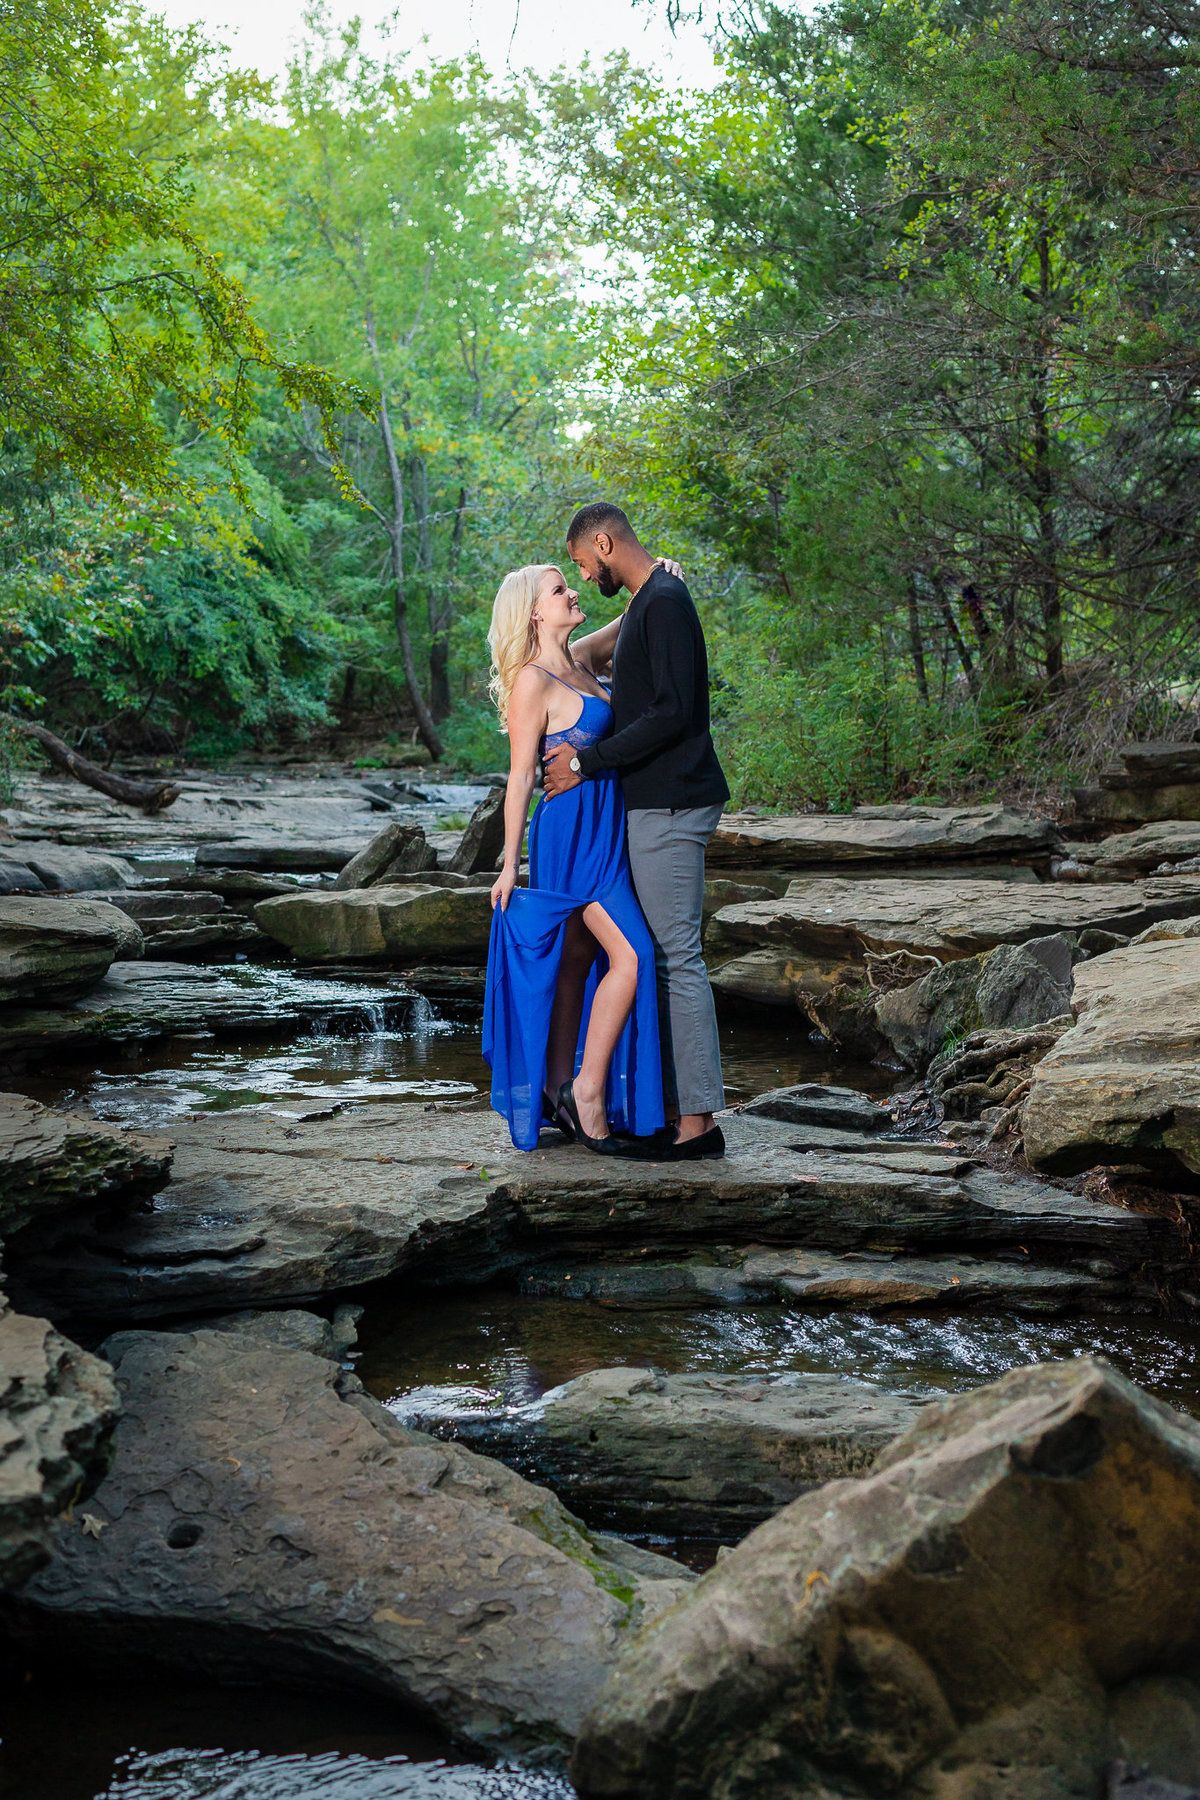 Stone_Creek_Park_Engagement_Flower_Mound_DFW_Morgan_Matthew-88